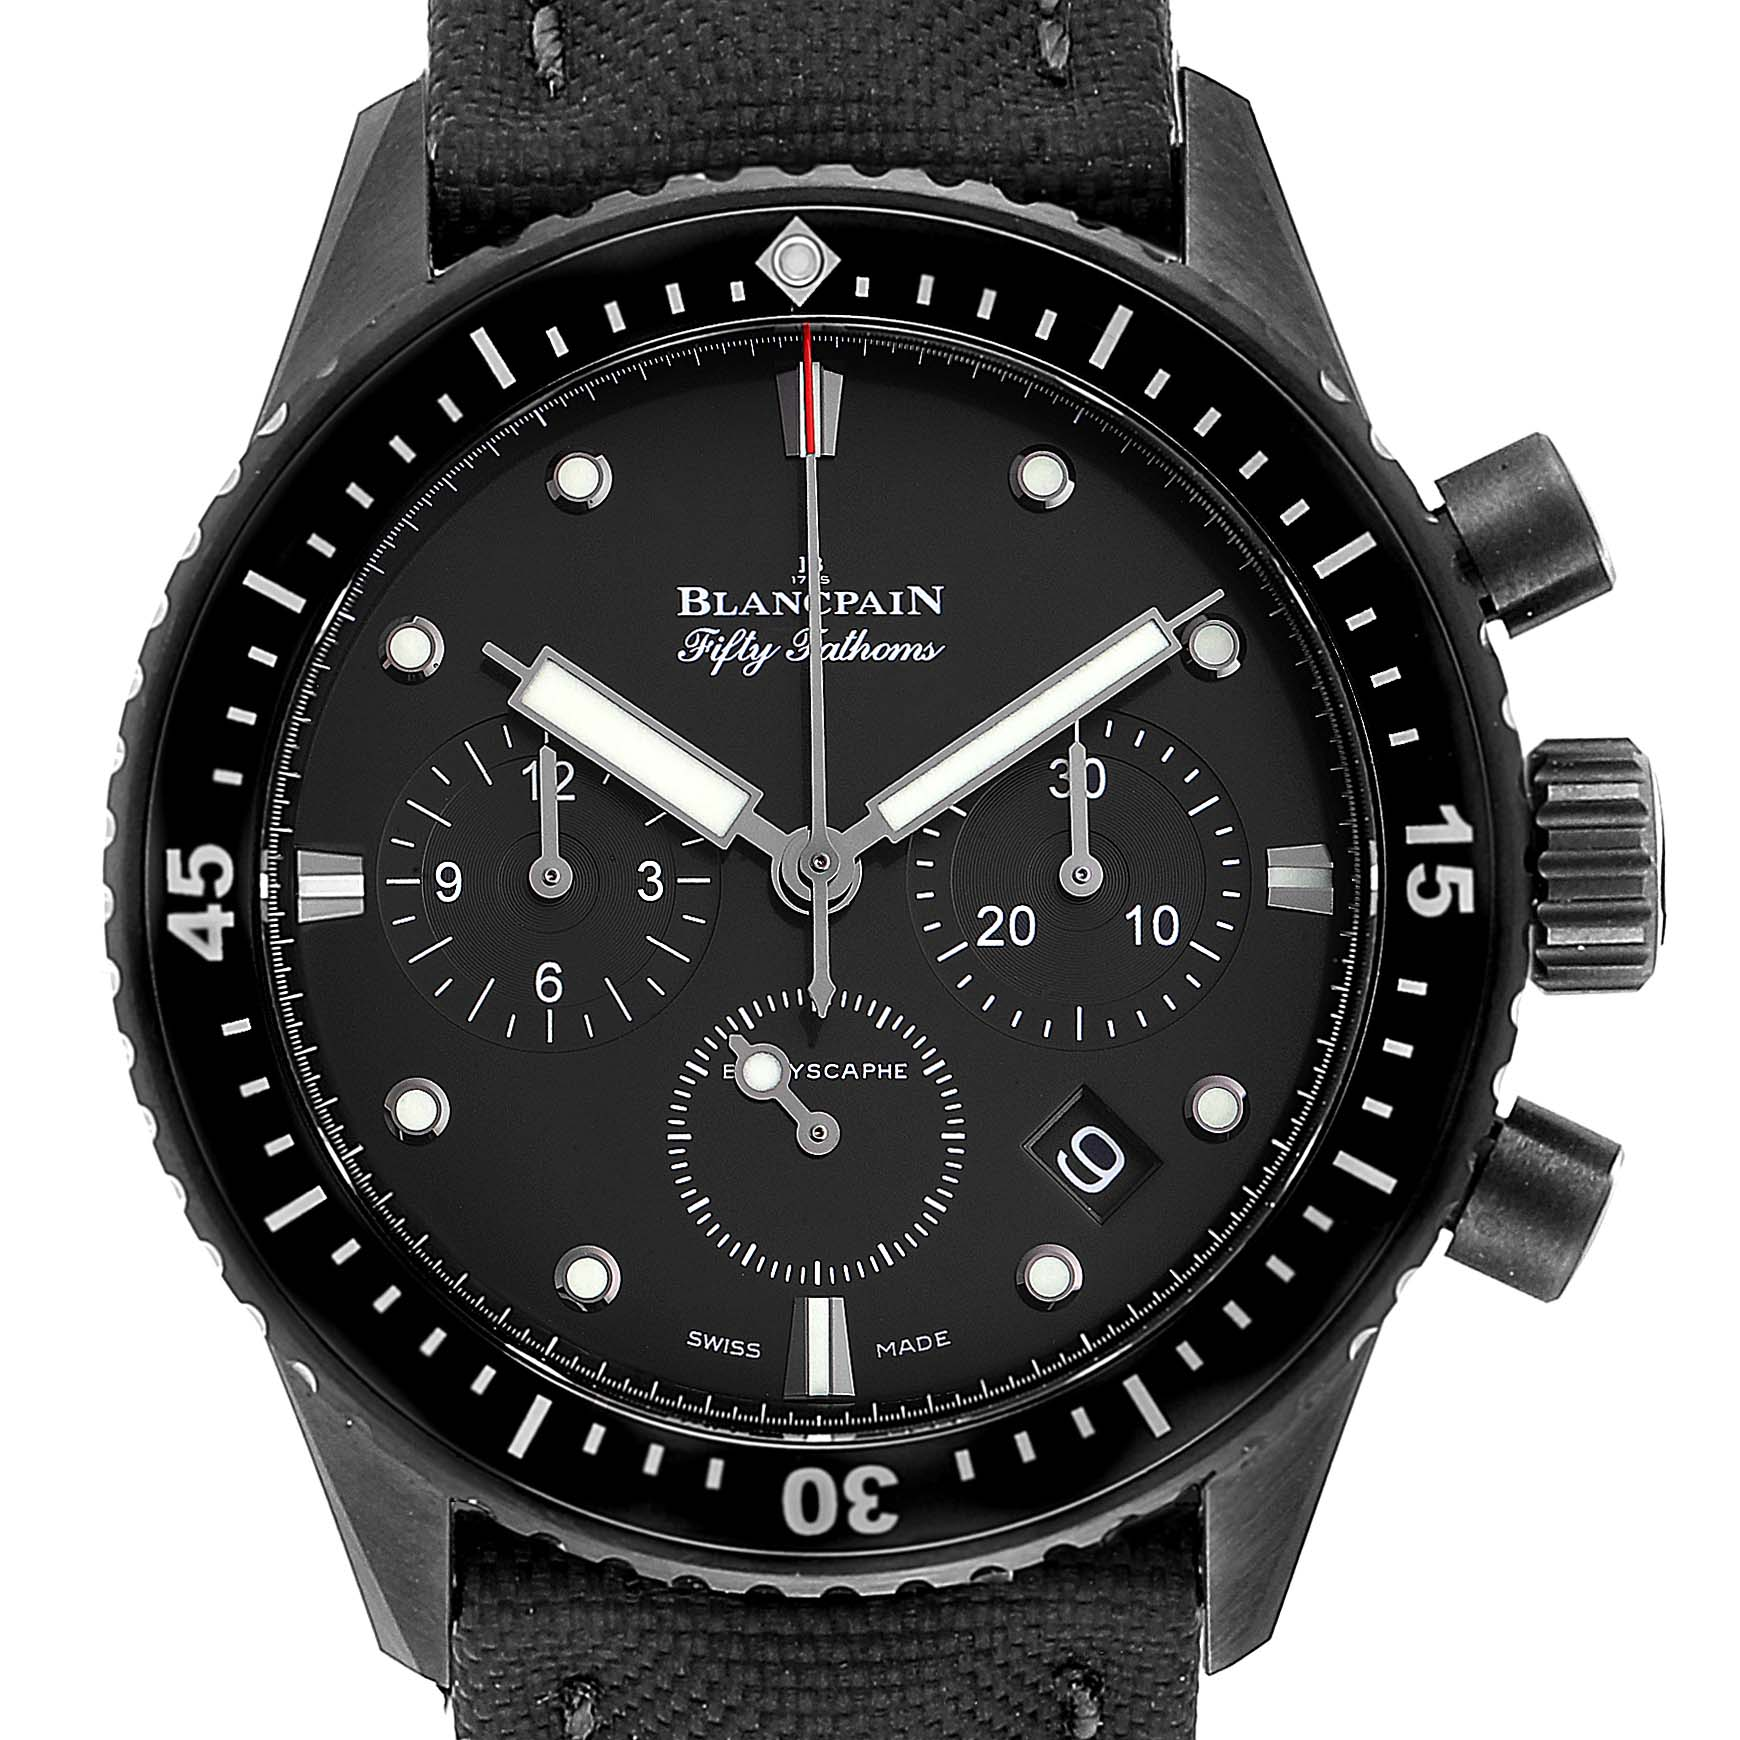 Blancpain Fifty Fathoms Bathyscaphe Ceramic Mens Watch 5200 Box Card SwissWatchExpo